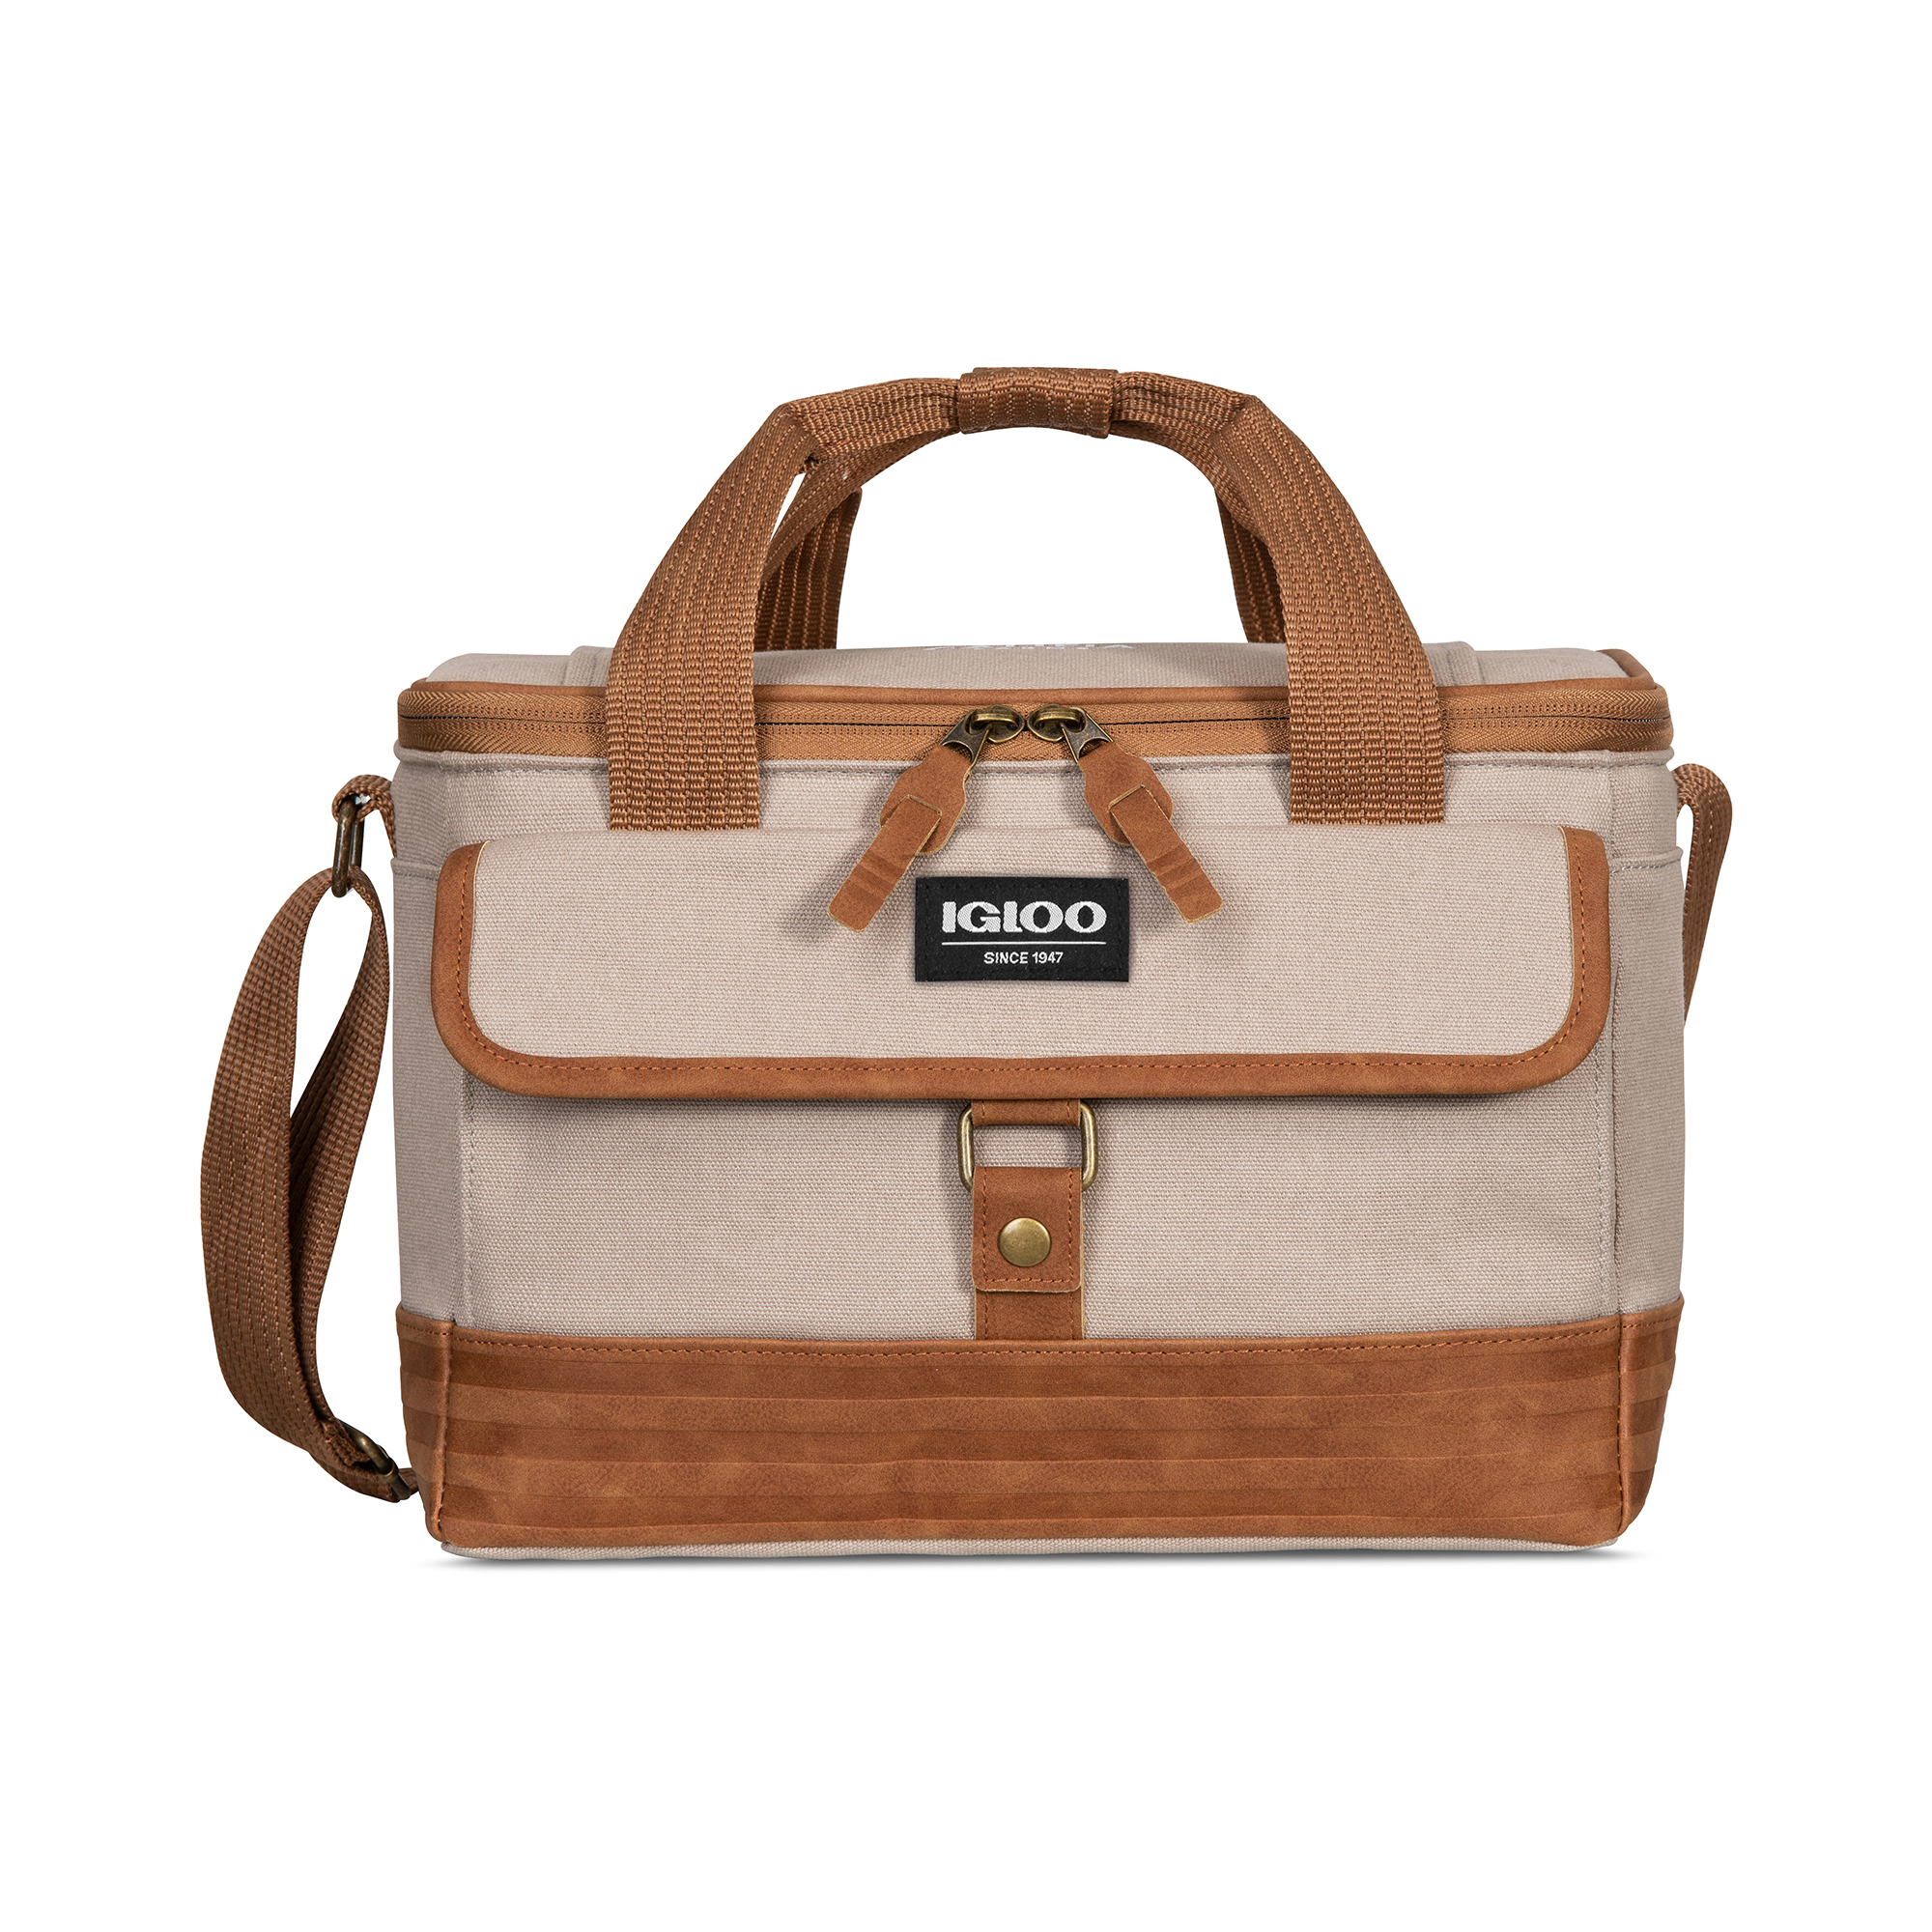 Igloo® Legacy Lunch Companion Cooler Natural-Brown